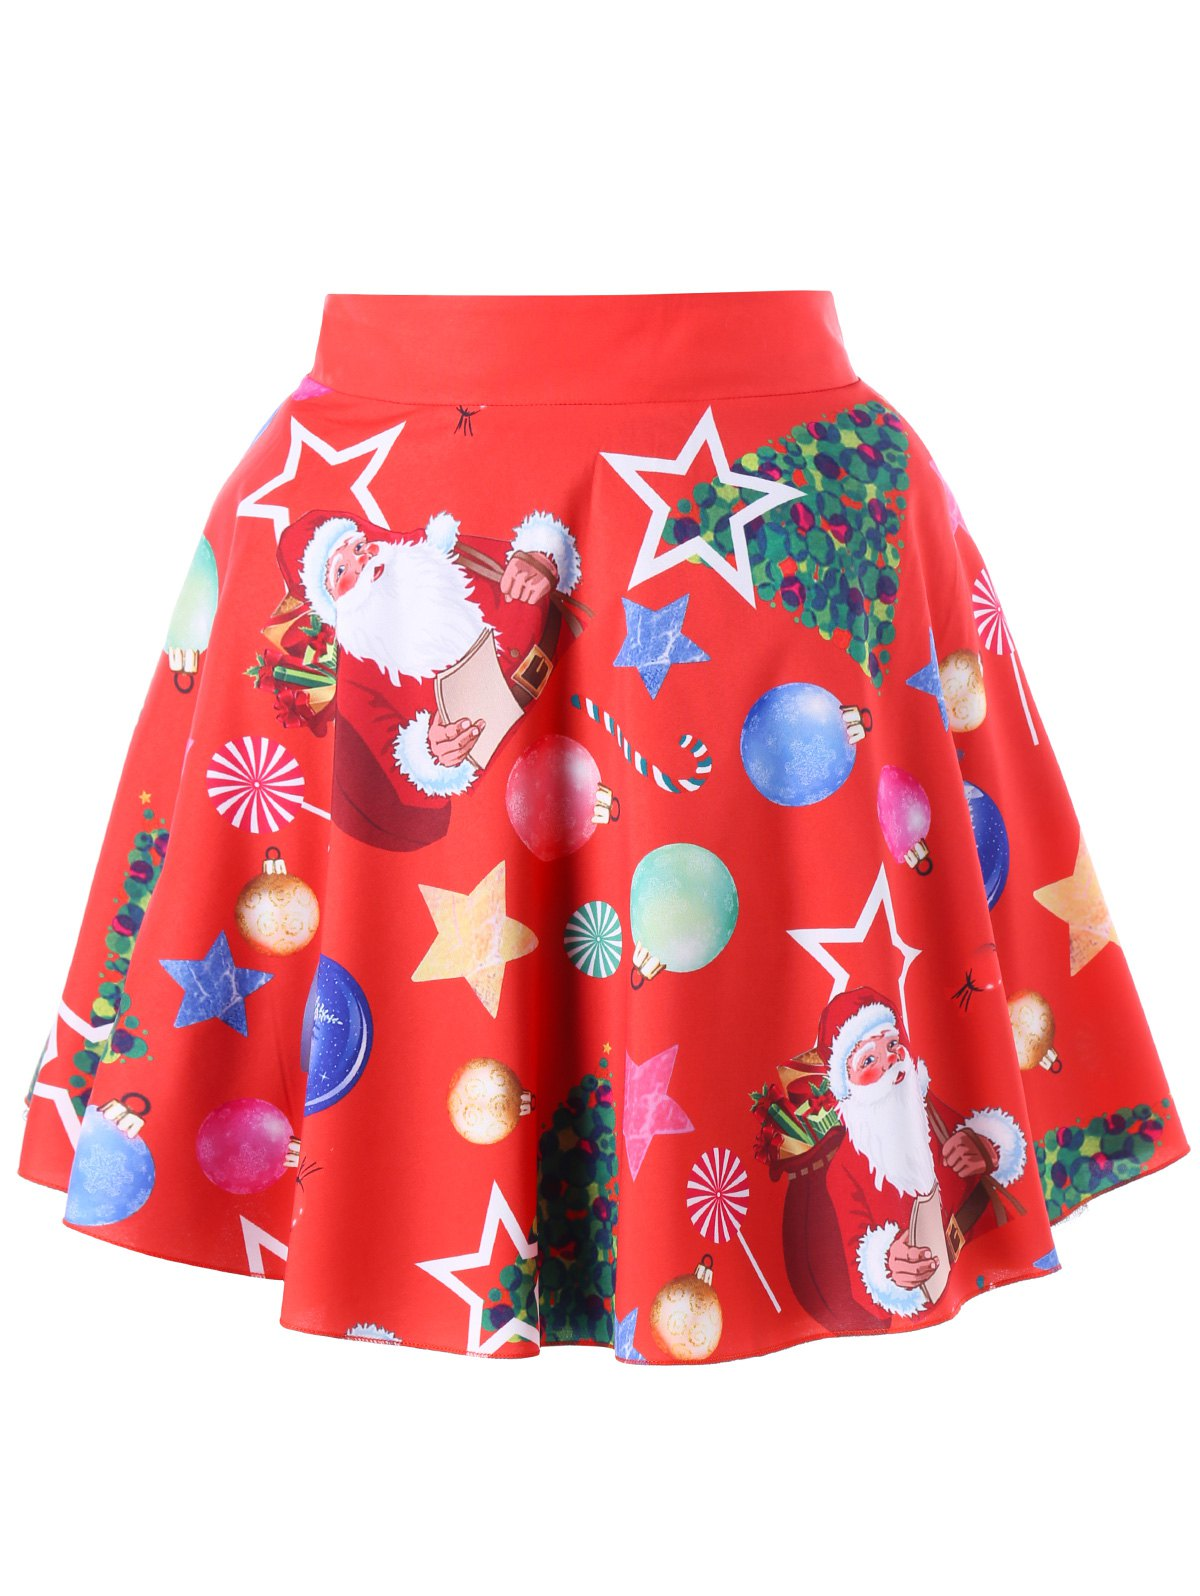 Plus Size Christmas Santa Claus Swing Skirt - RED 3XL